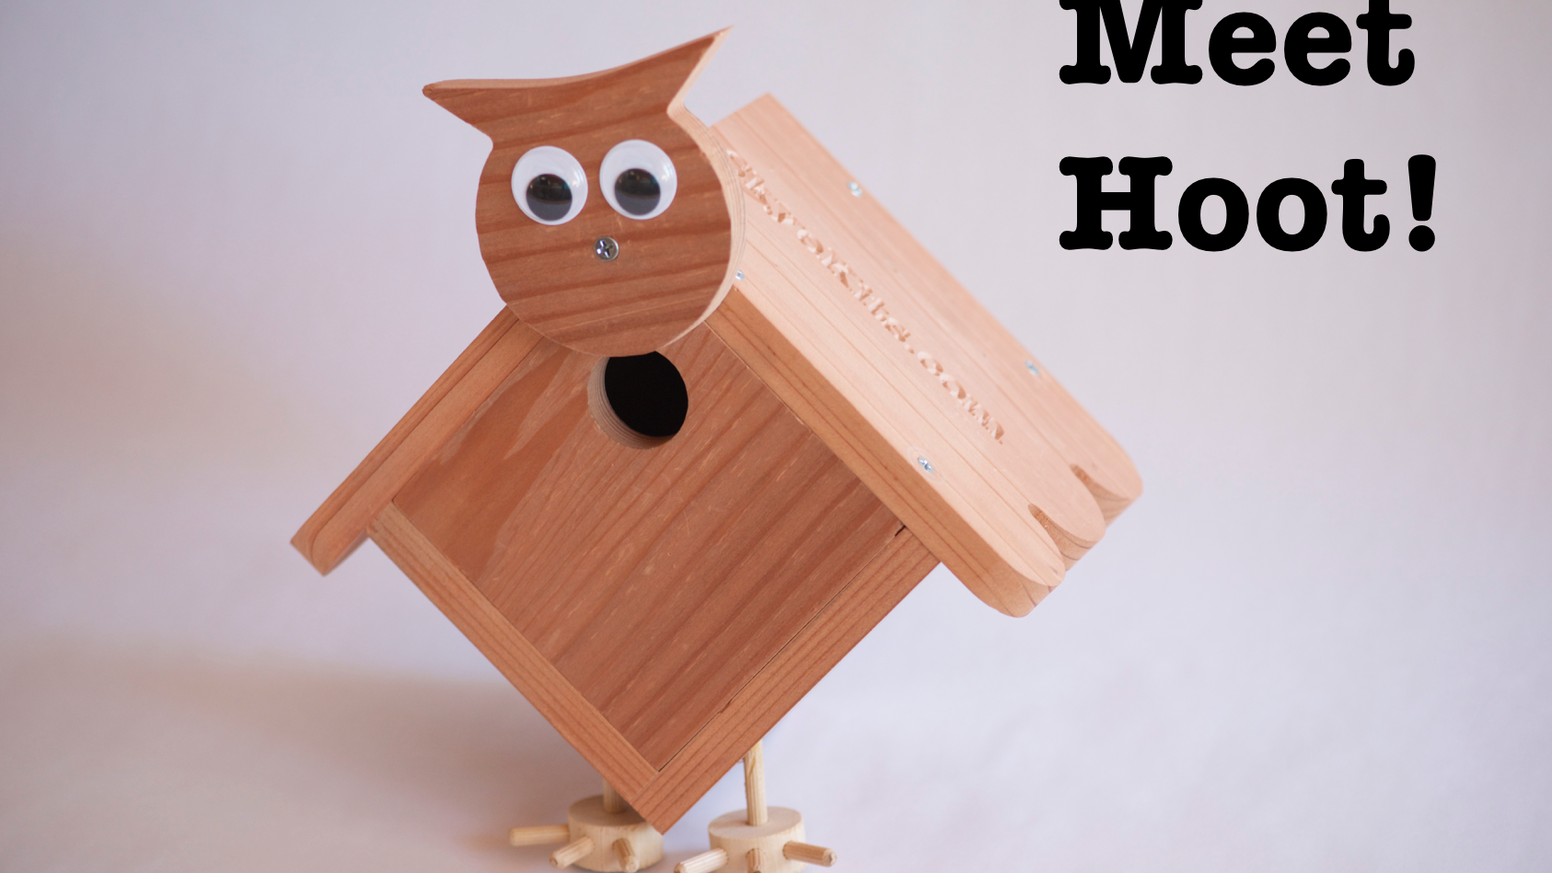 Hoot A Timeless Stem Project Kit For Families By George